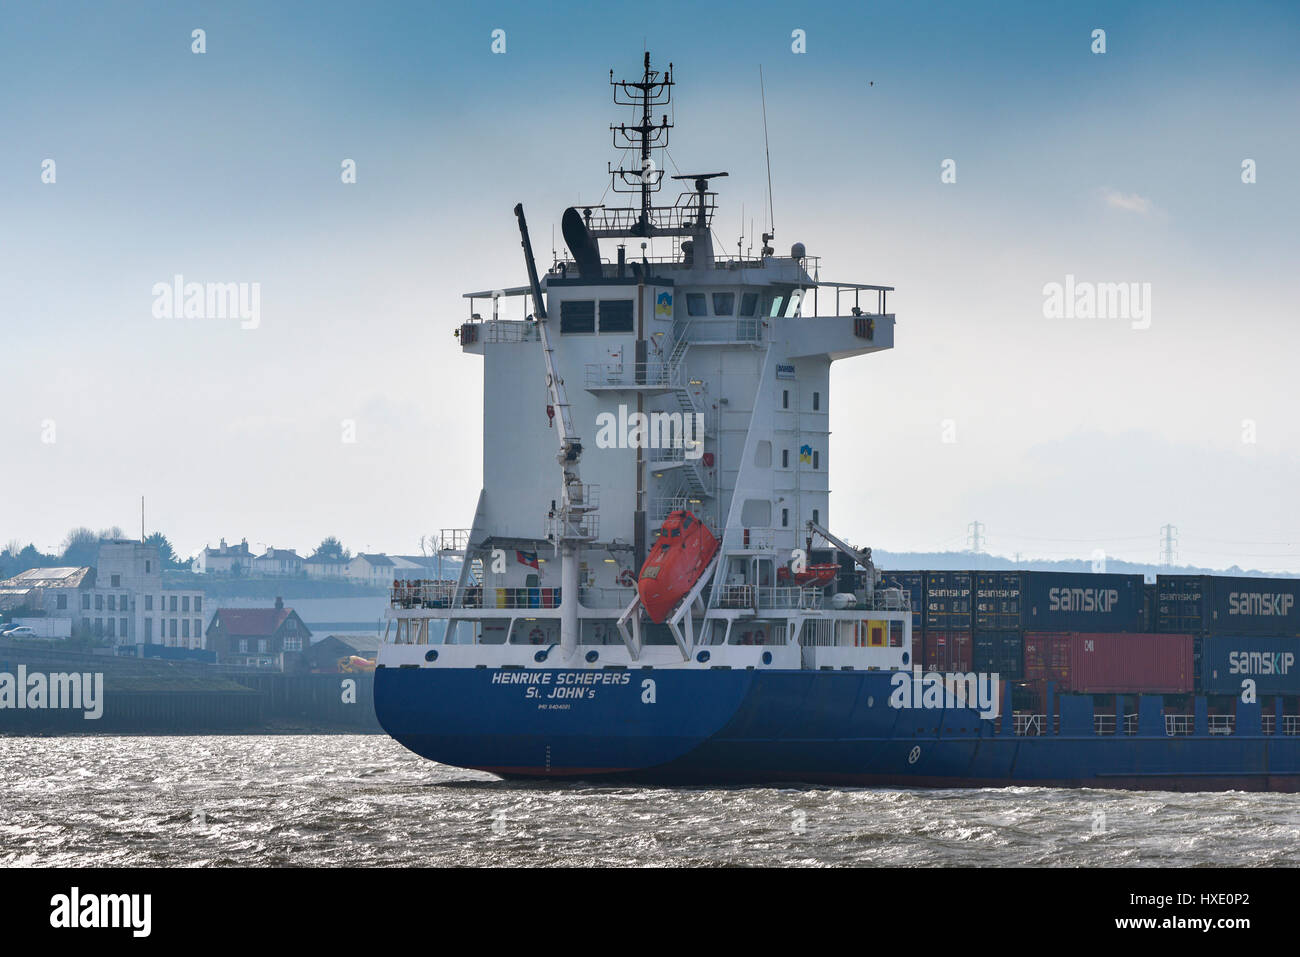 The container ship Henrike Schepers steaming upriver on the River Thames in the UK. Stock Photo